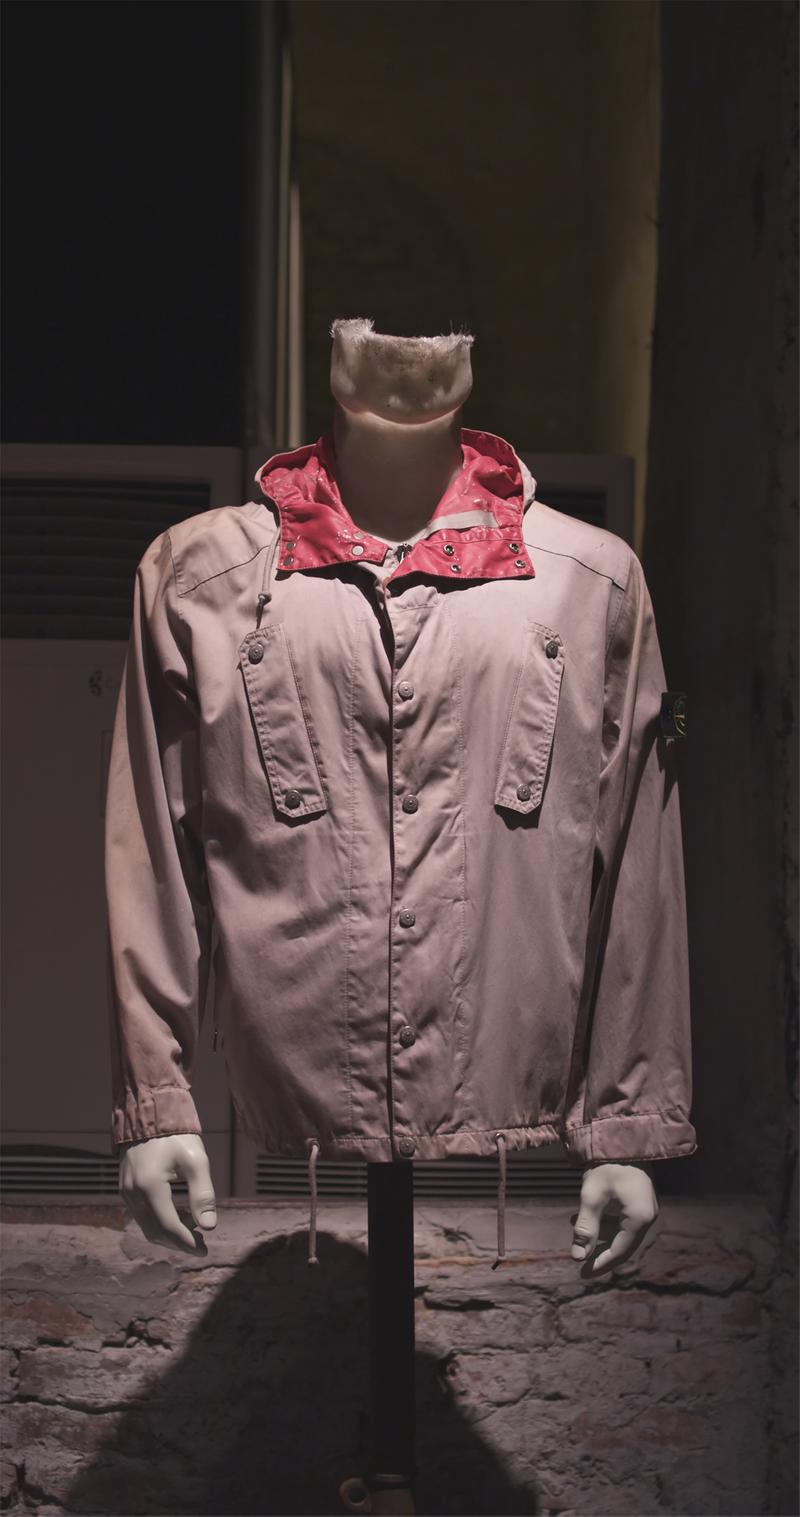 Gray hooded jacket with red lining, button closure, snap buttons detail oat chest and Stone Island badge on upper left sleeve displayed on mannequin bust